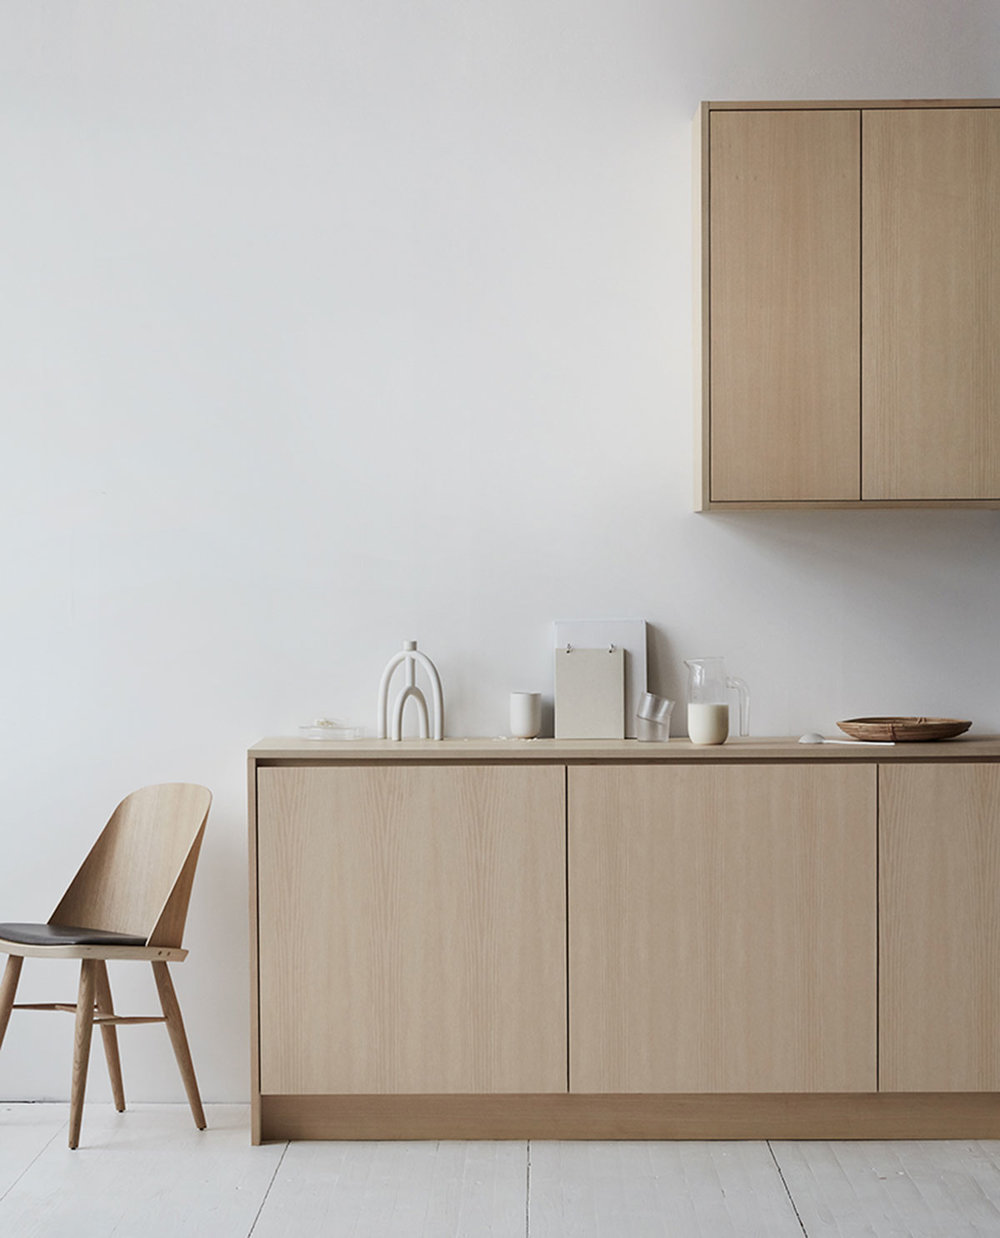 Wooden kitchen inspiration, Scandinavian design ash kitchen